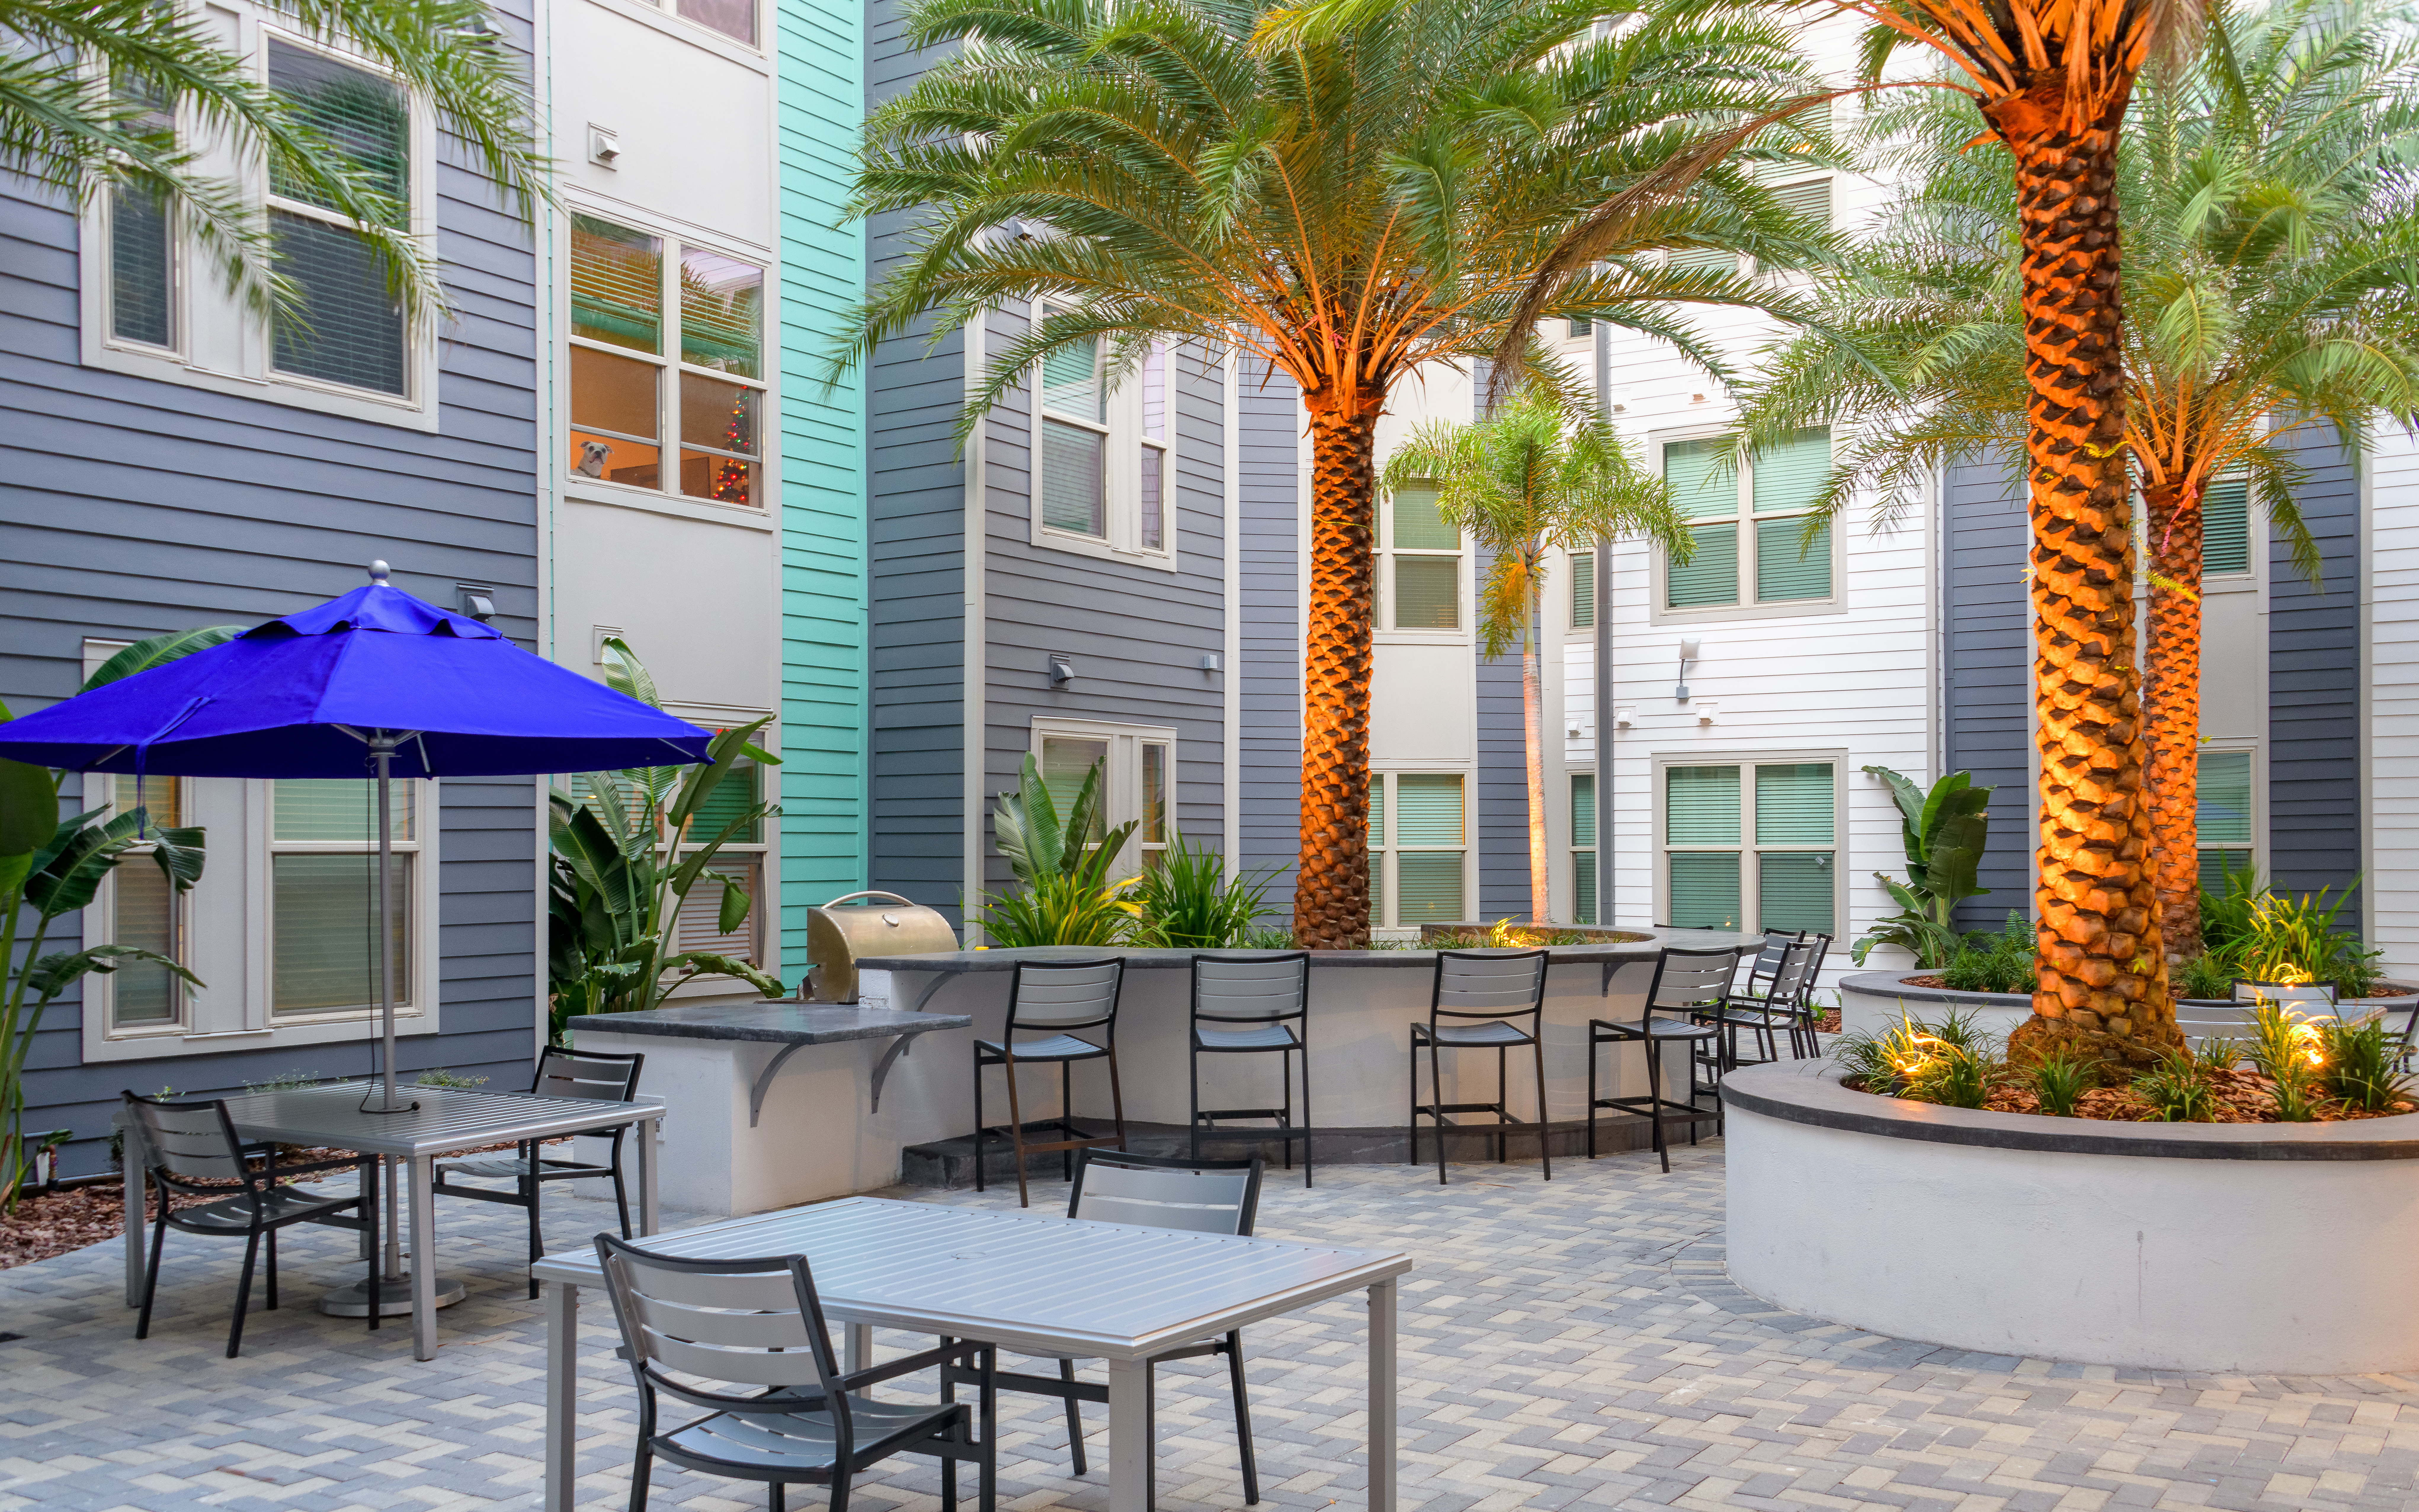 The Standard Tampa Courtyard Grill